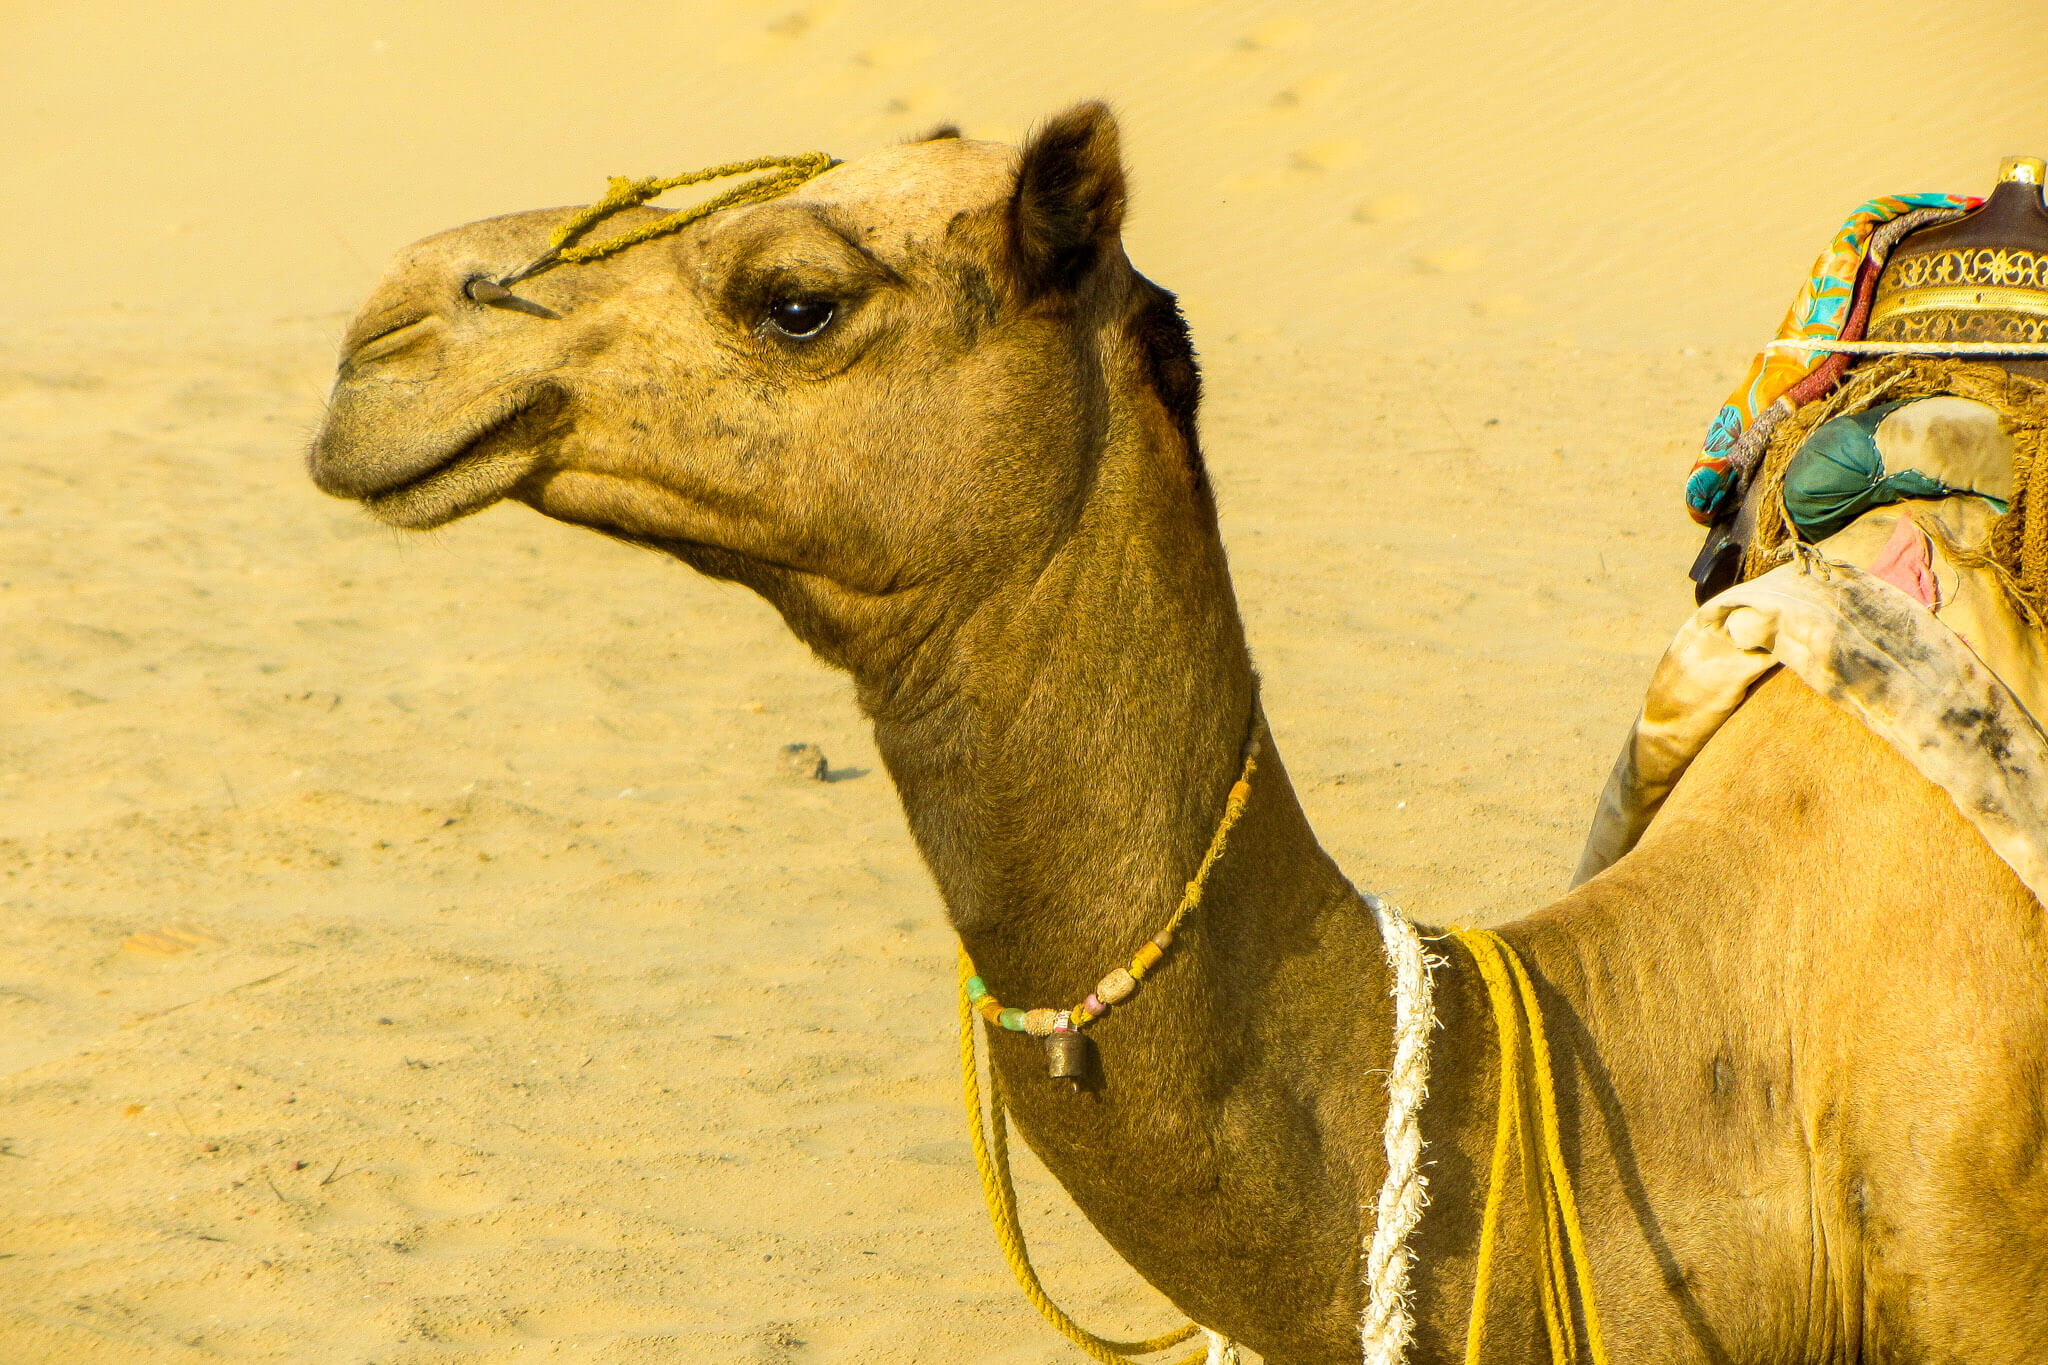 The camels of India's Thar Desert